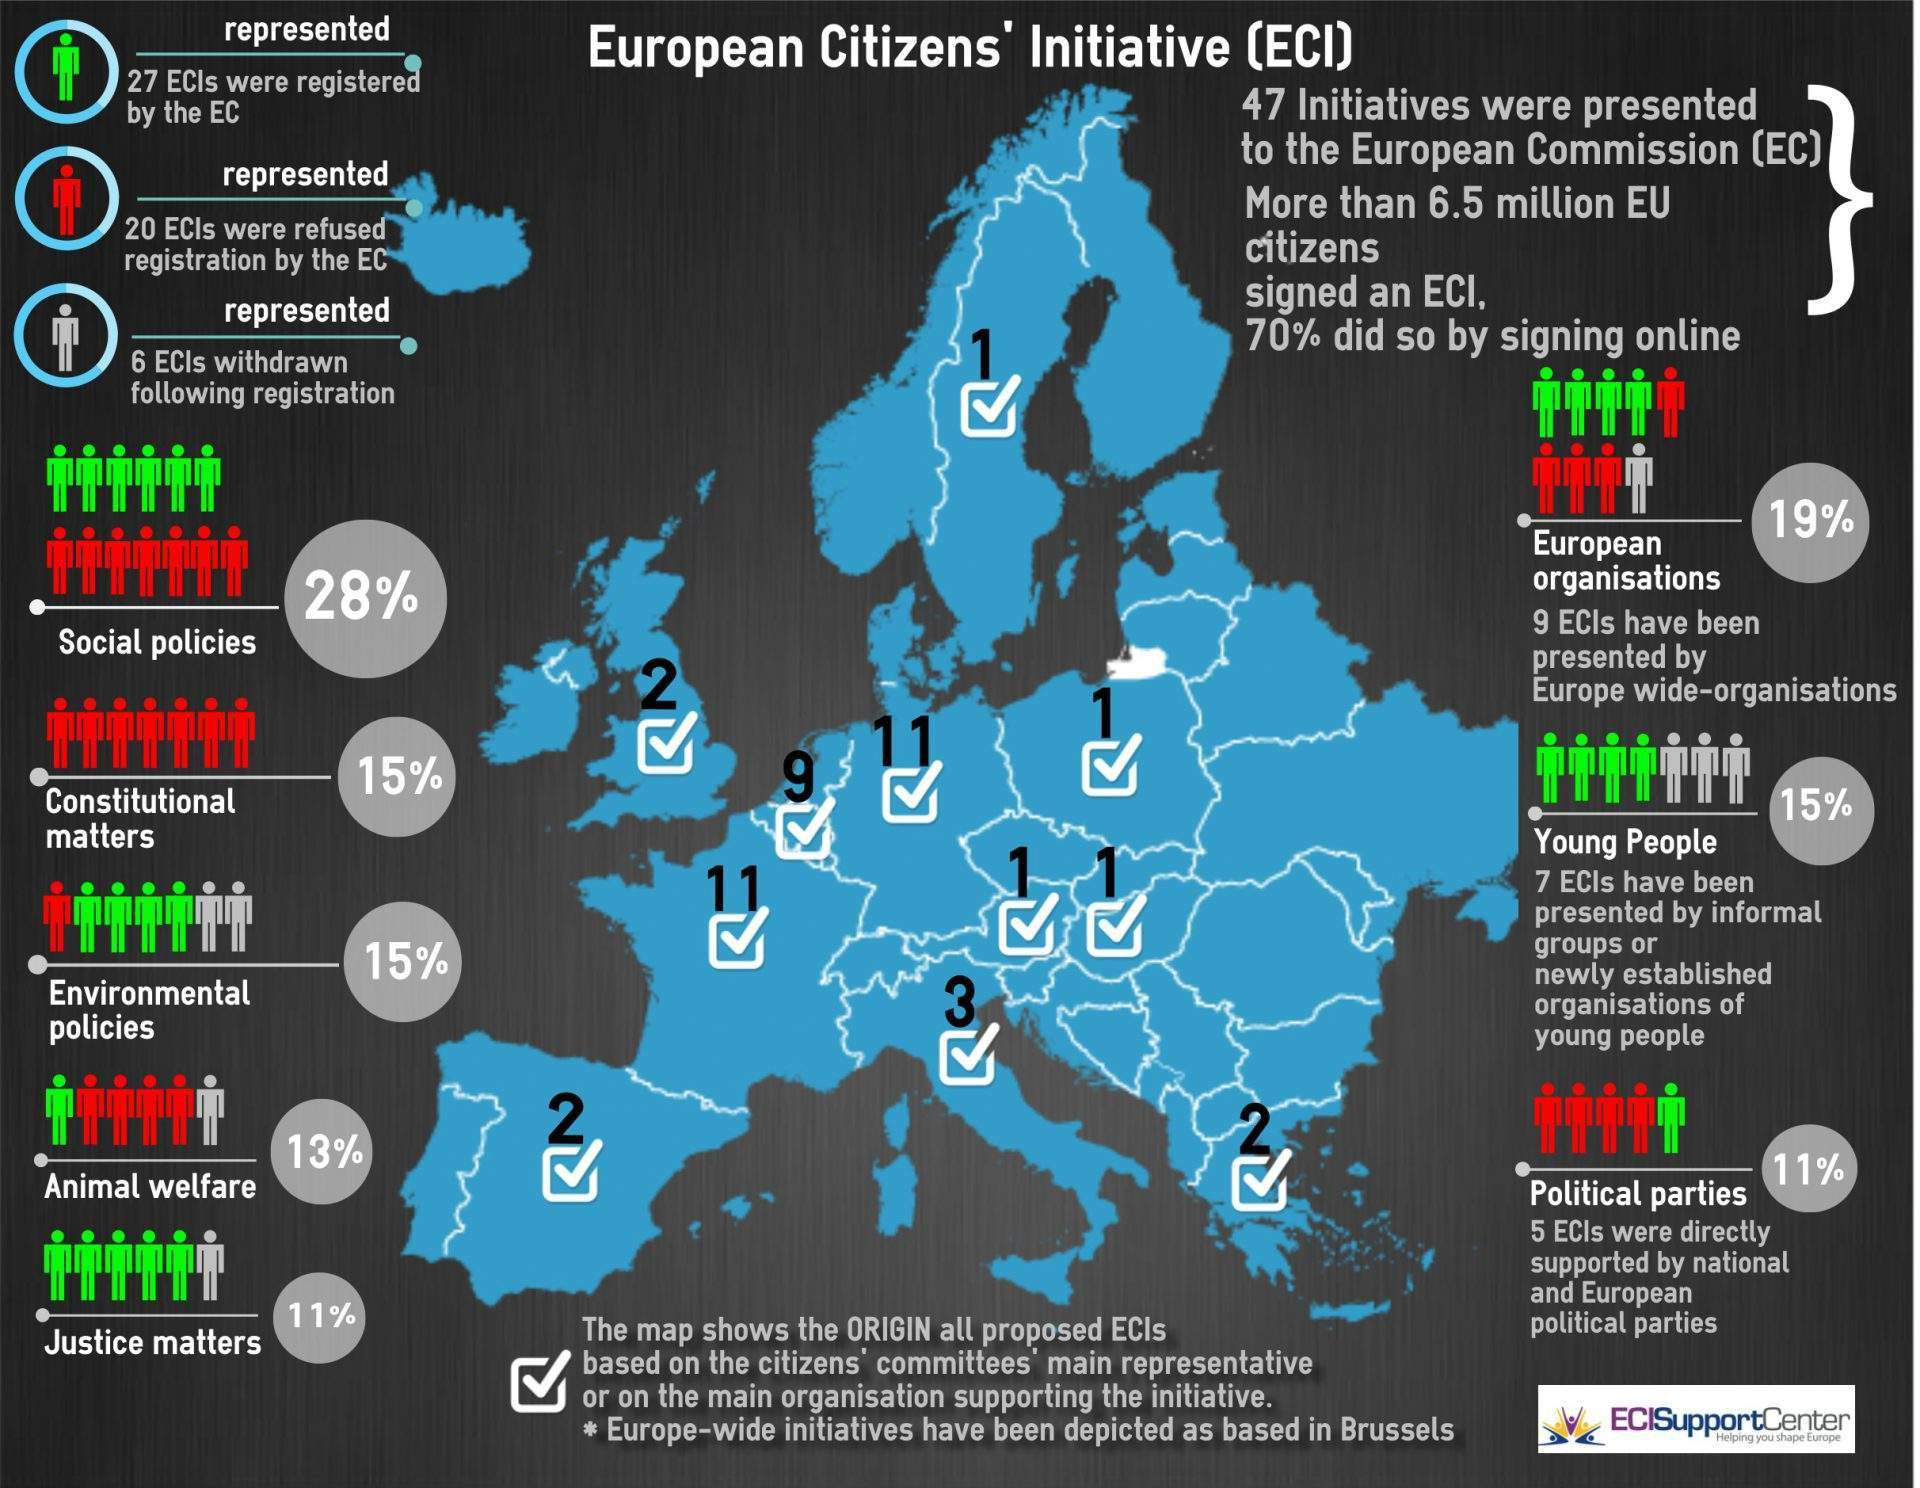 Download Now The ECI Table And ECI Infographic And Know More About ECIs!